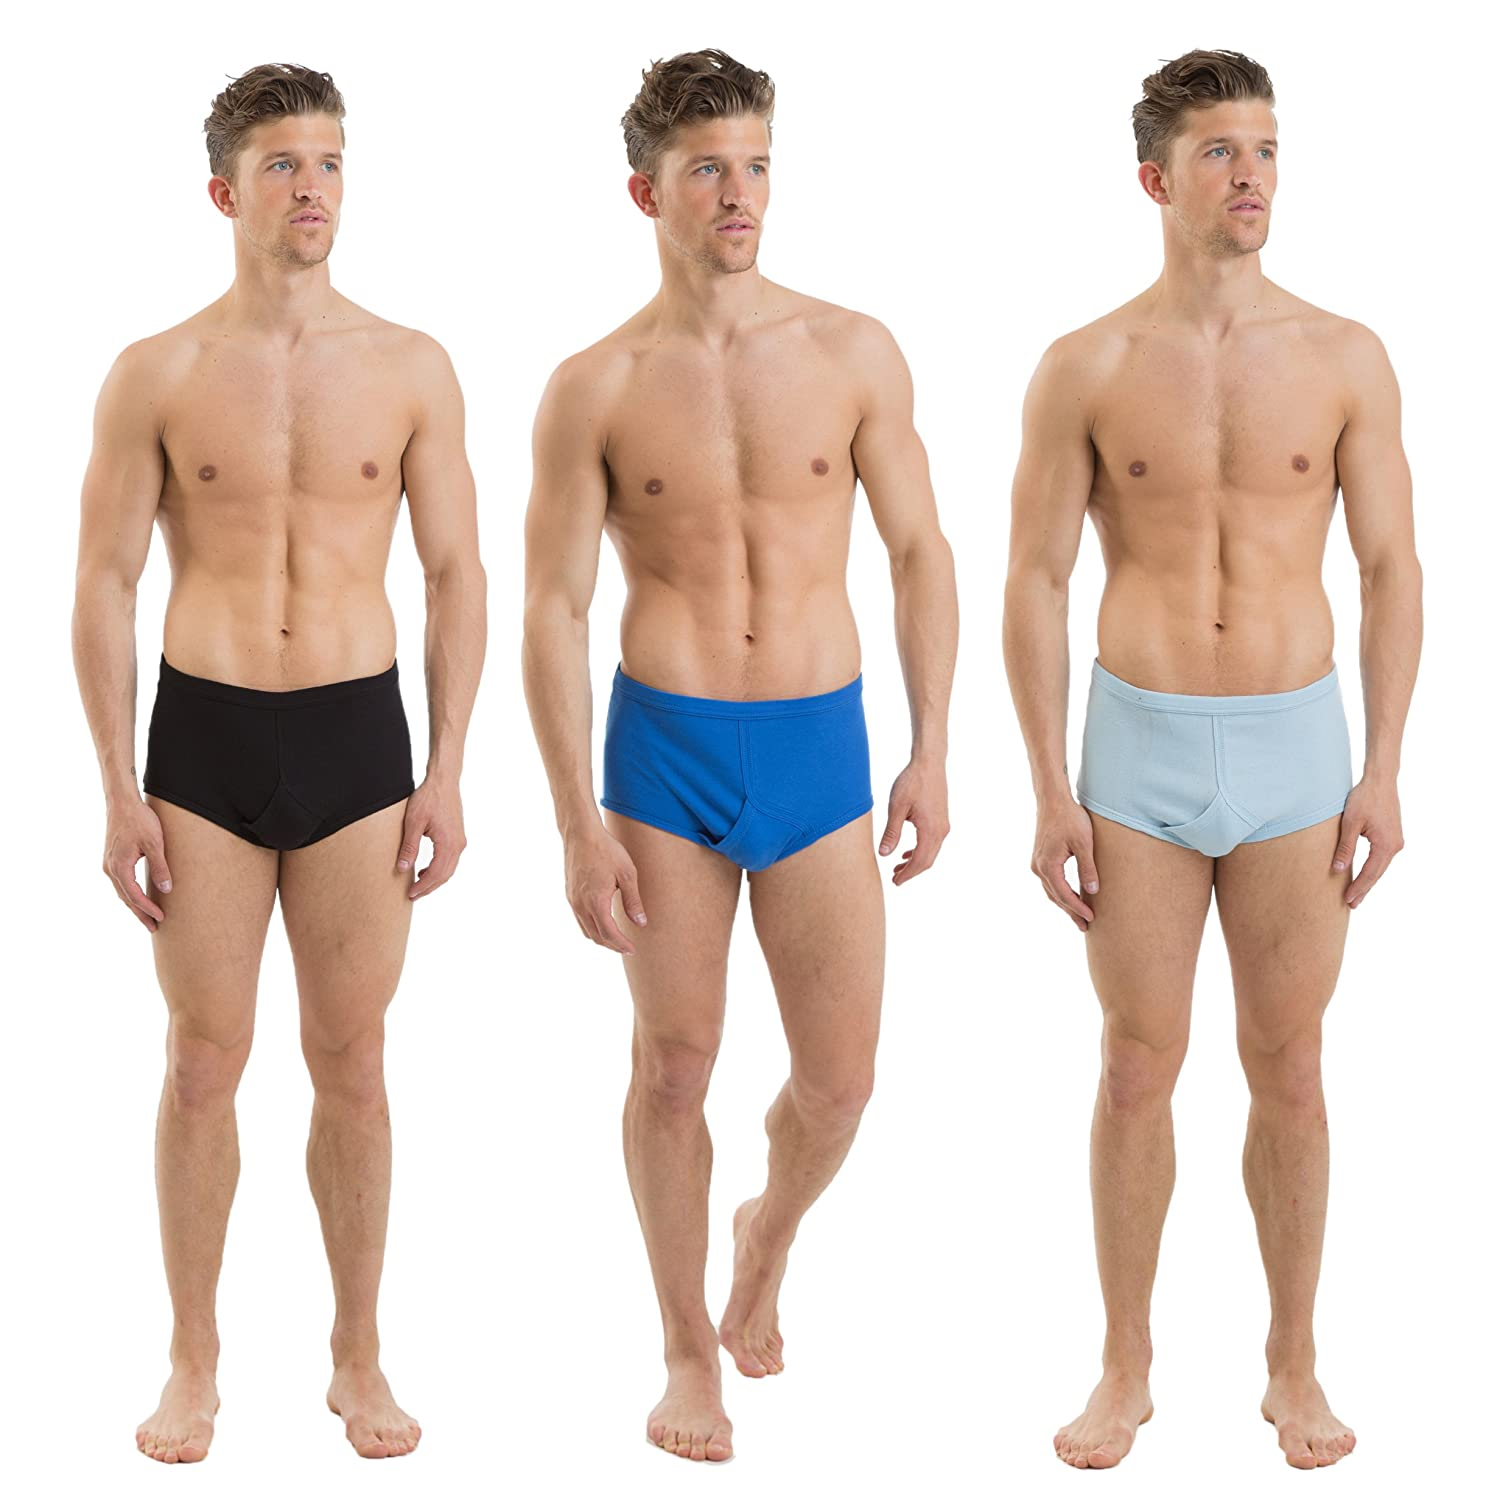 12 Pack Mens 100% Cotton Underwear Assorted Colors